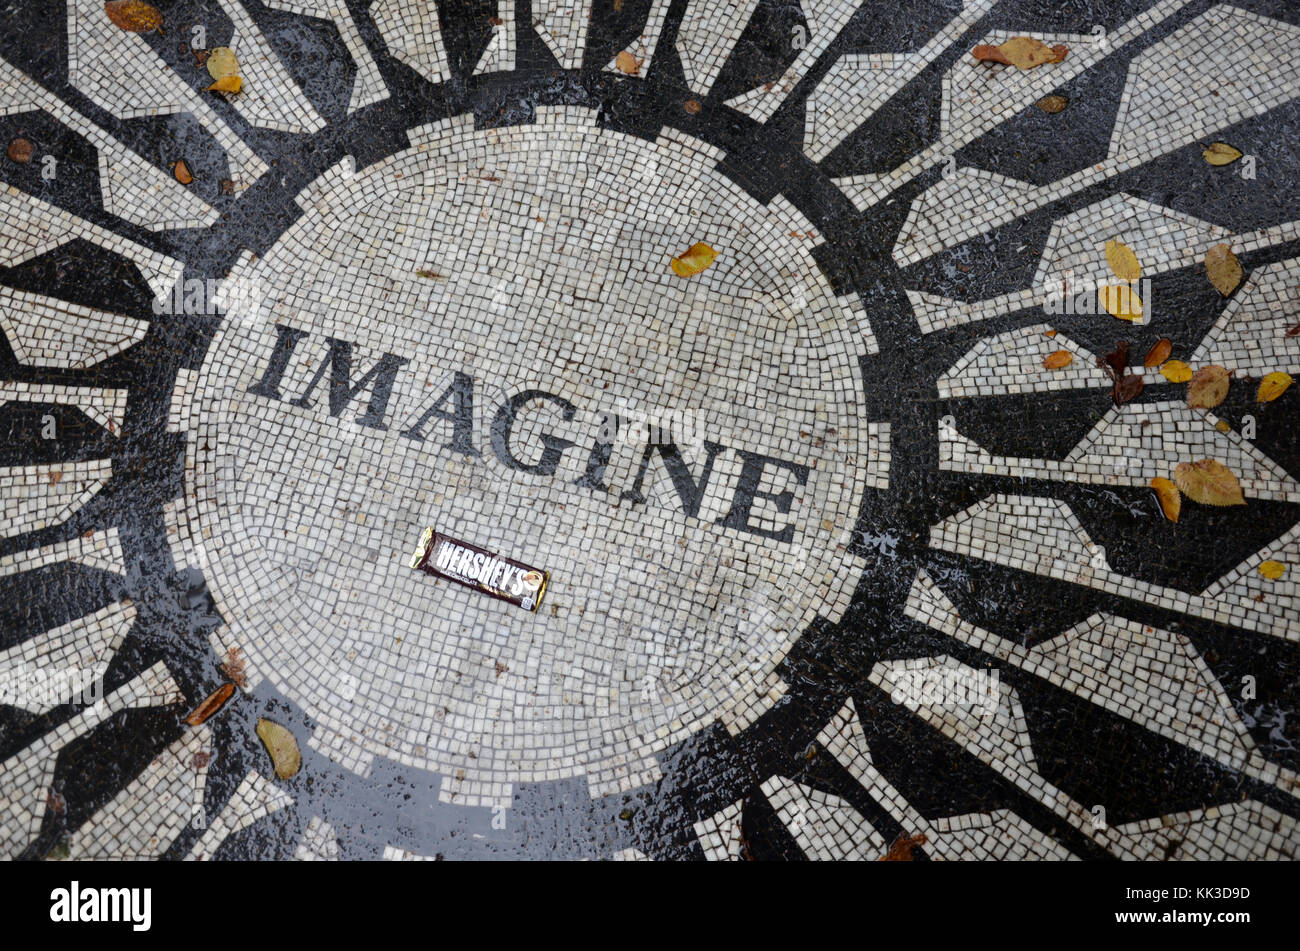 Strawberry Fields mosaic memorial in Central Park New York City - Stock Image